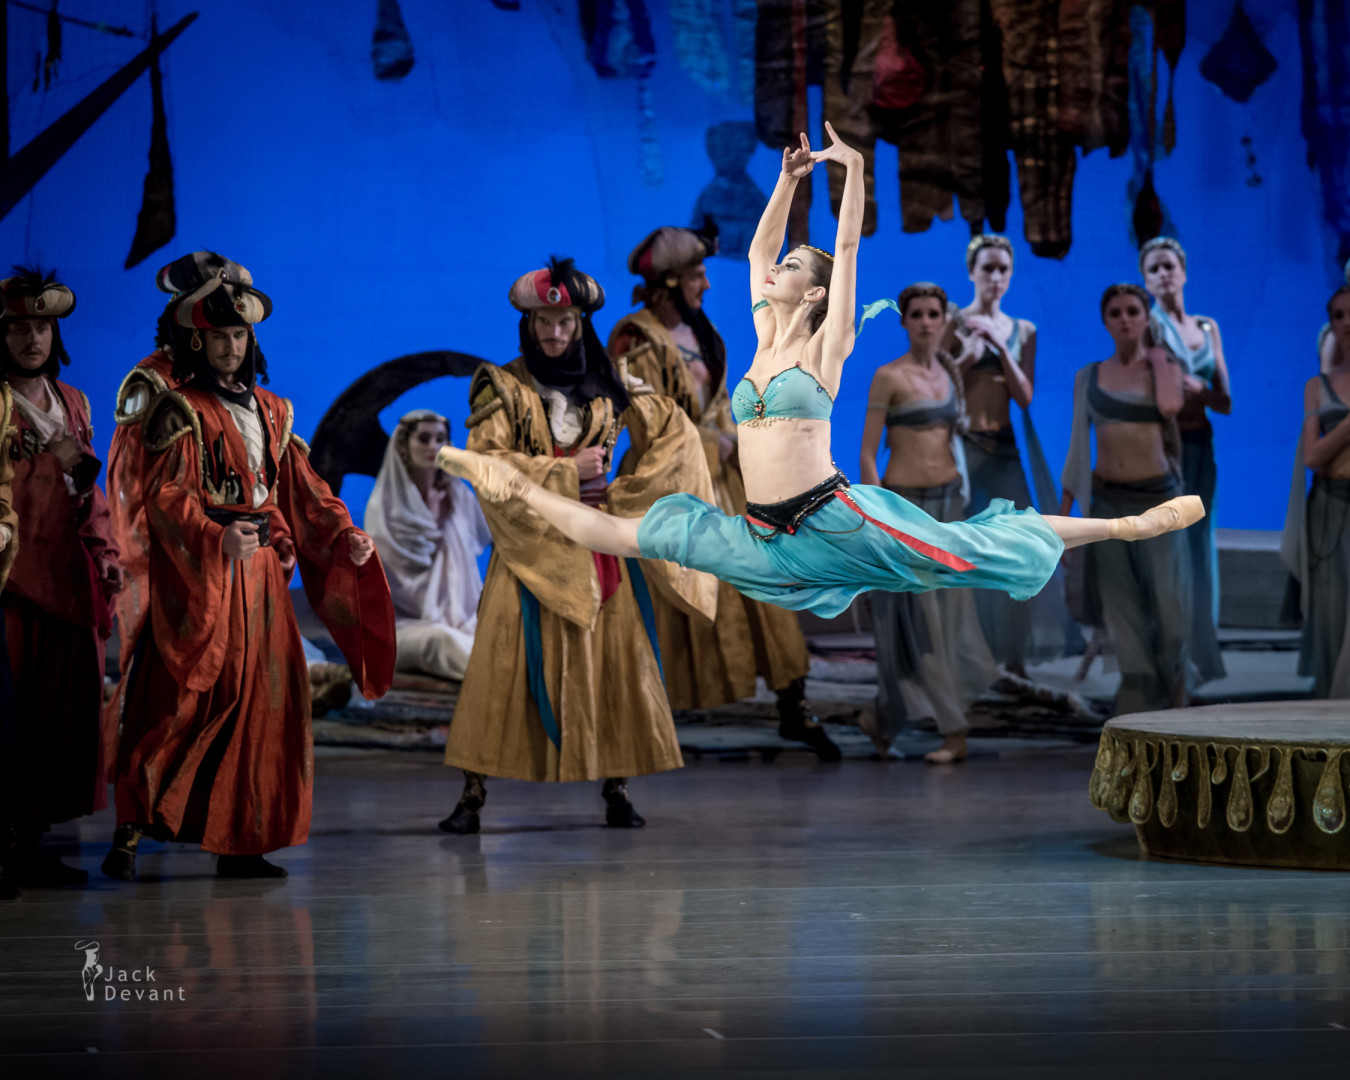 Anastasia Kolegova as Medora in the slave market scene in Le Corsaire